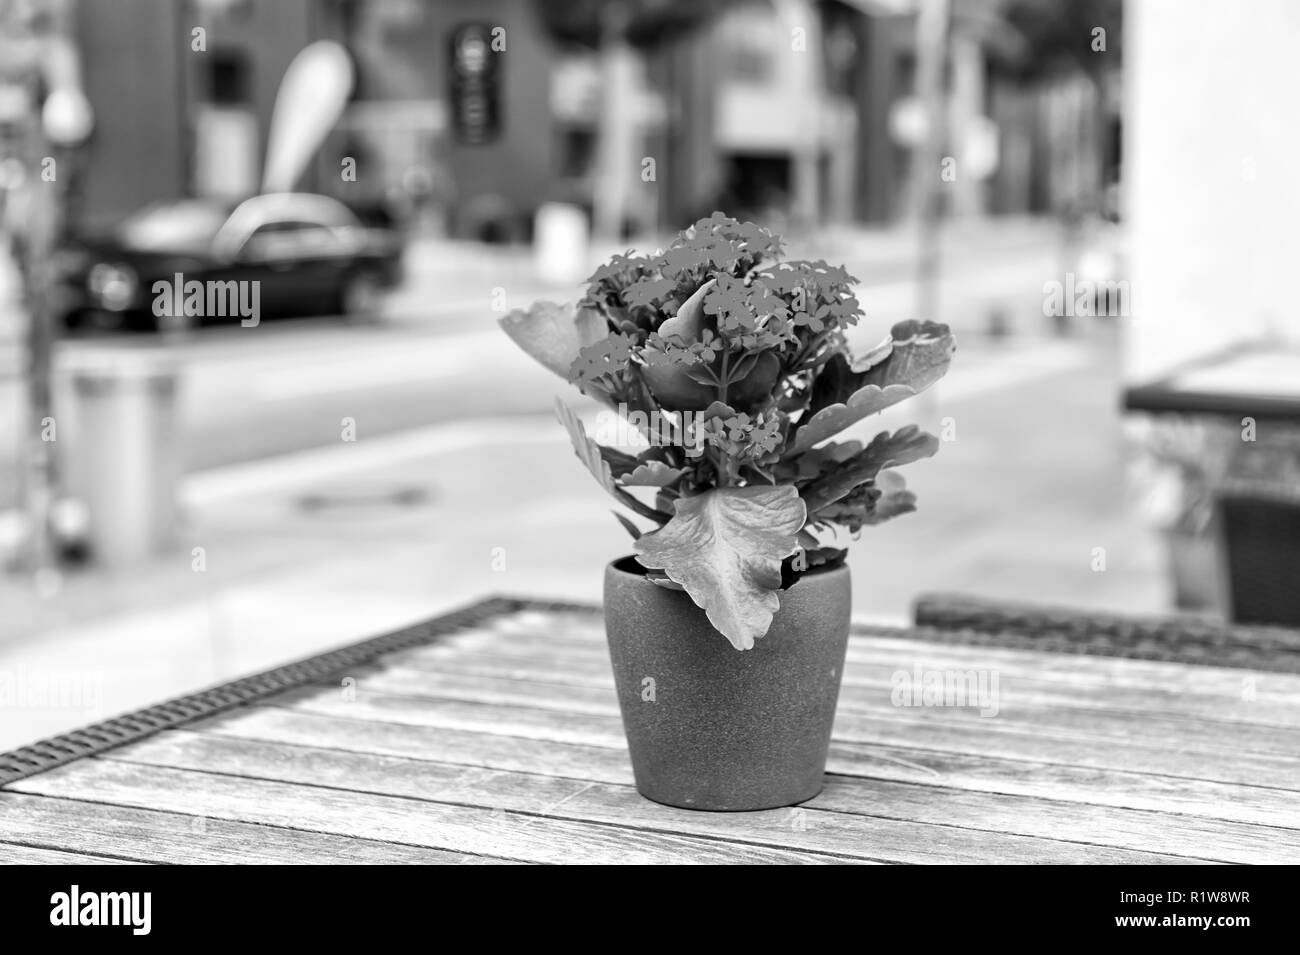 Flower blossoming in pot on table outdoor in Hamburg, Germany. Flower arrangement, floristry, floral decor, design. - Stock Image